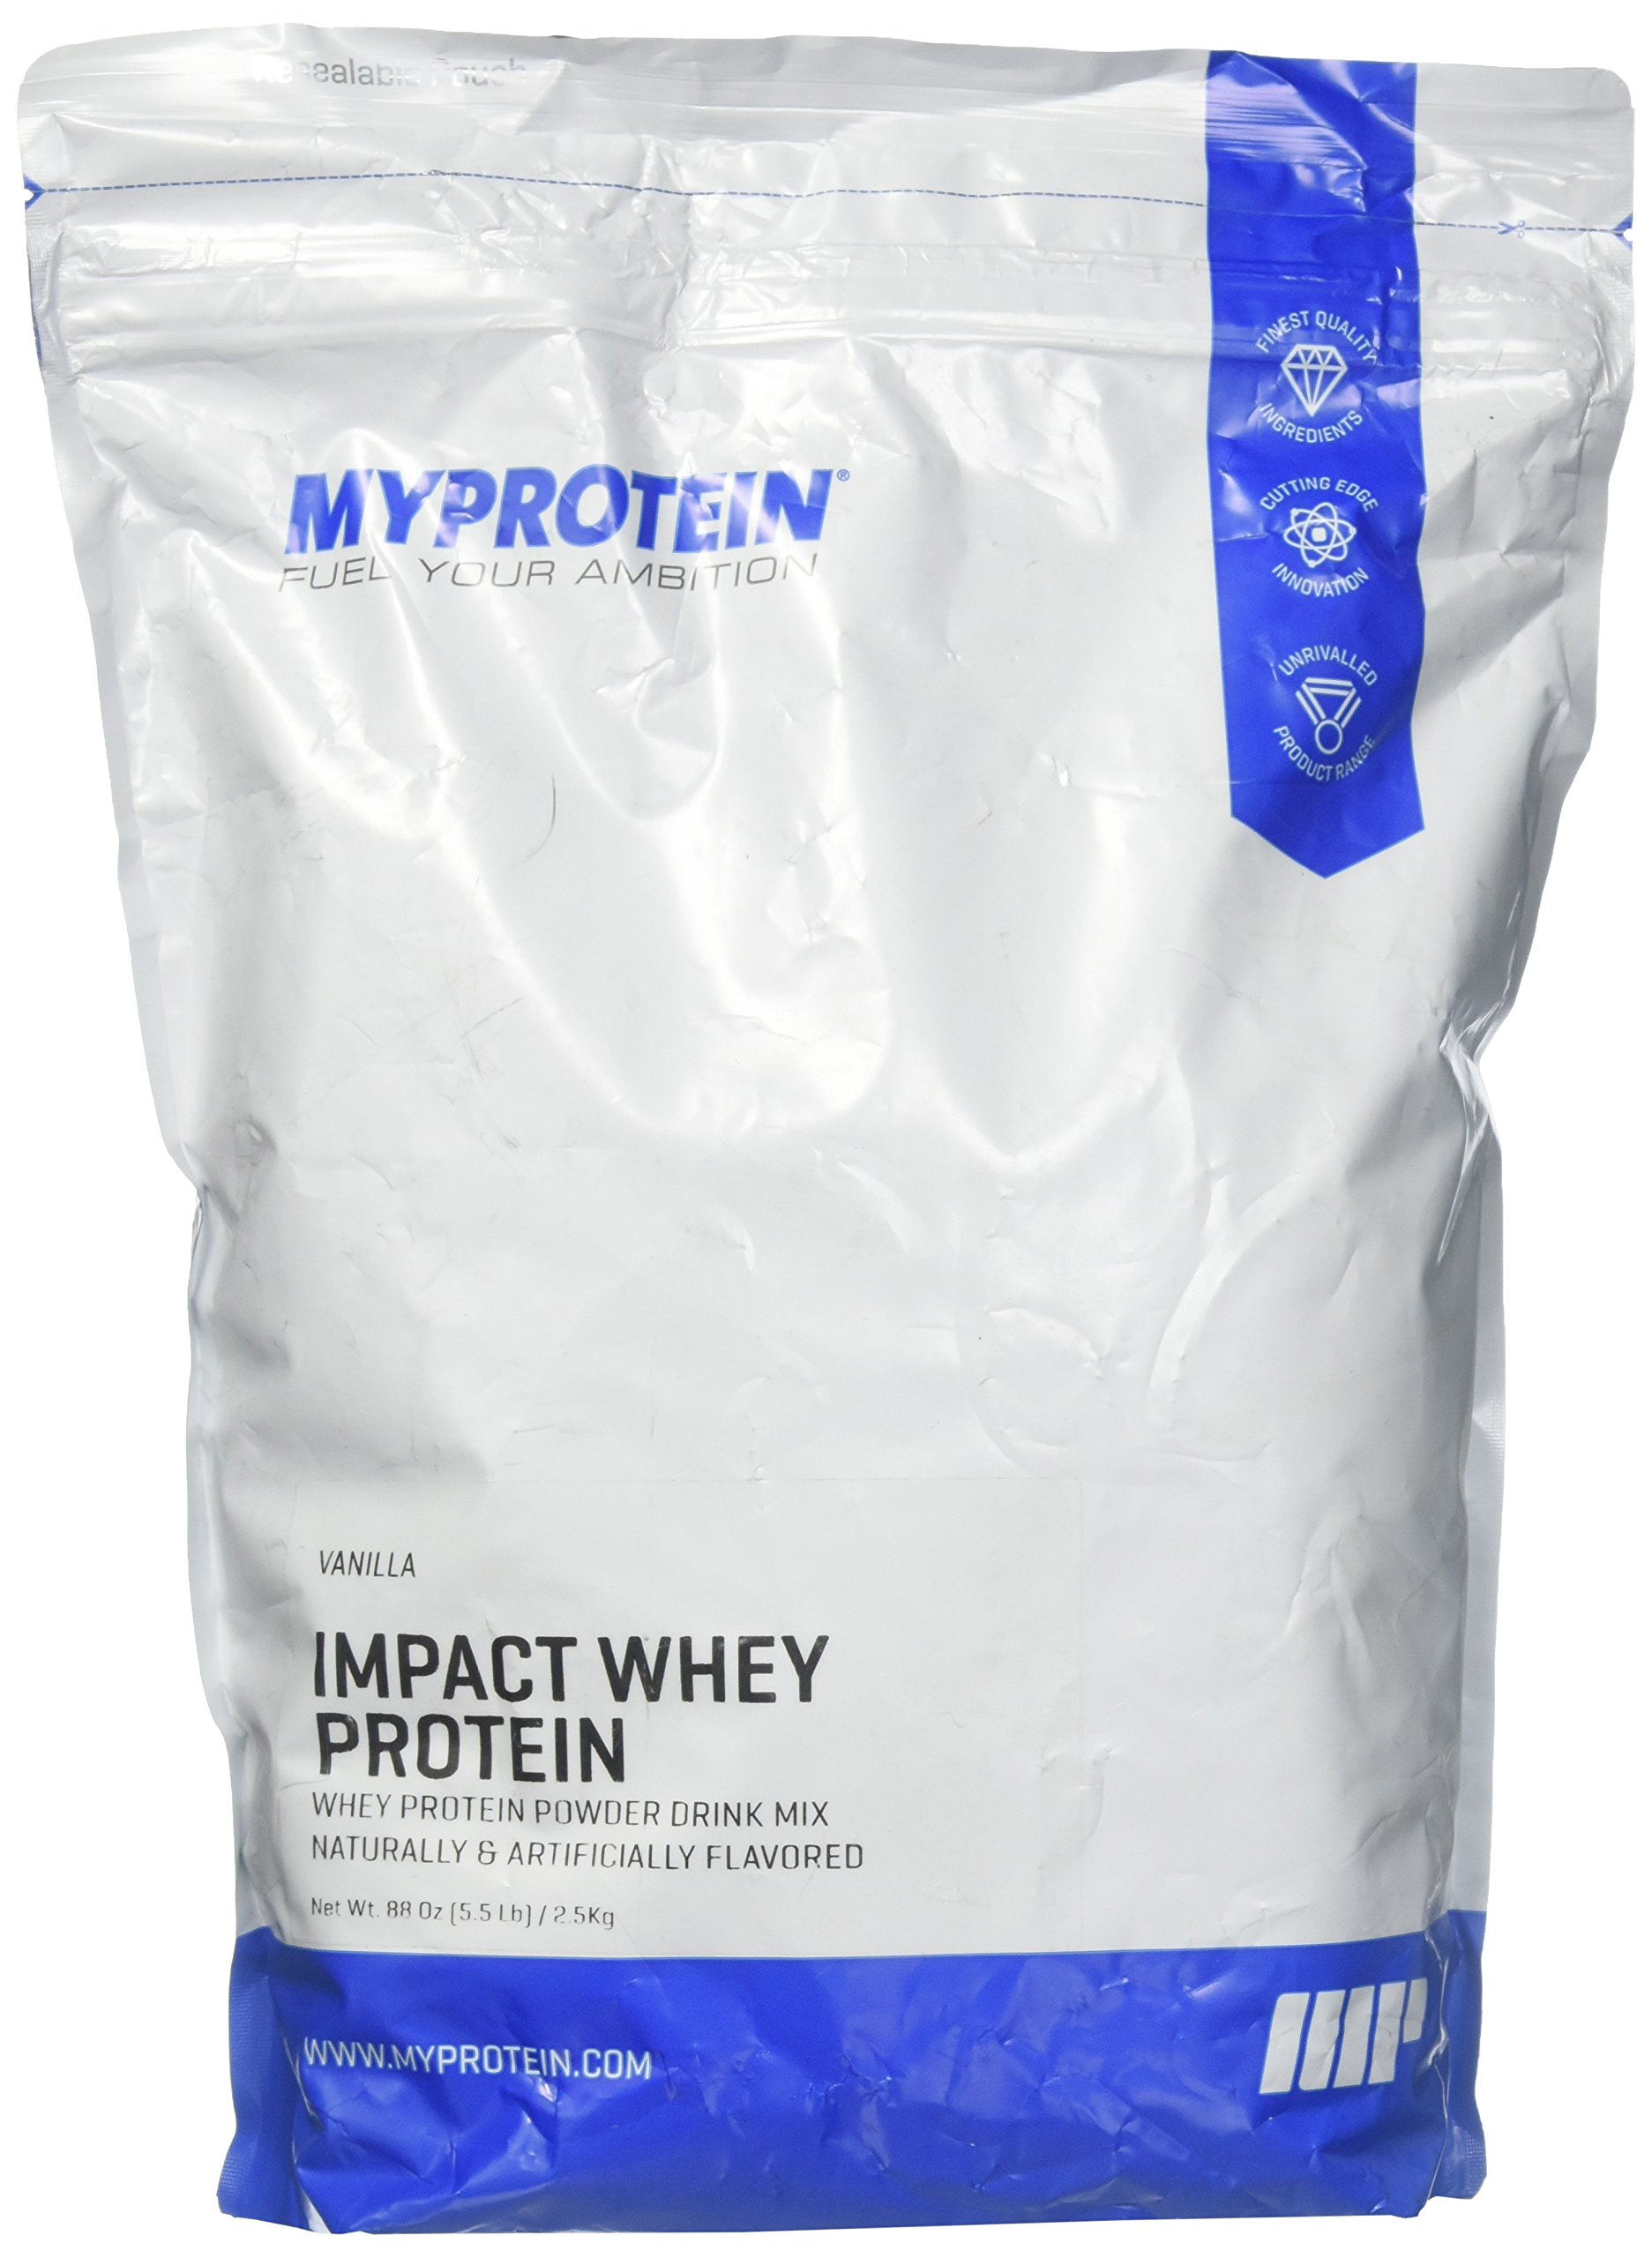 Myprotein Impact Whey Protein Blend, Vanilla, 5.5 lbs (100 Servings)